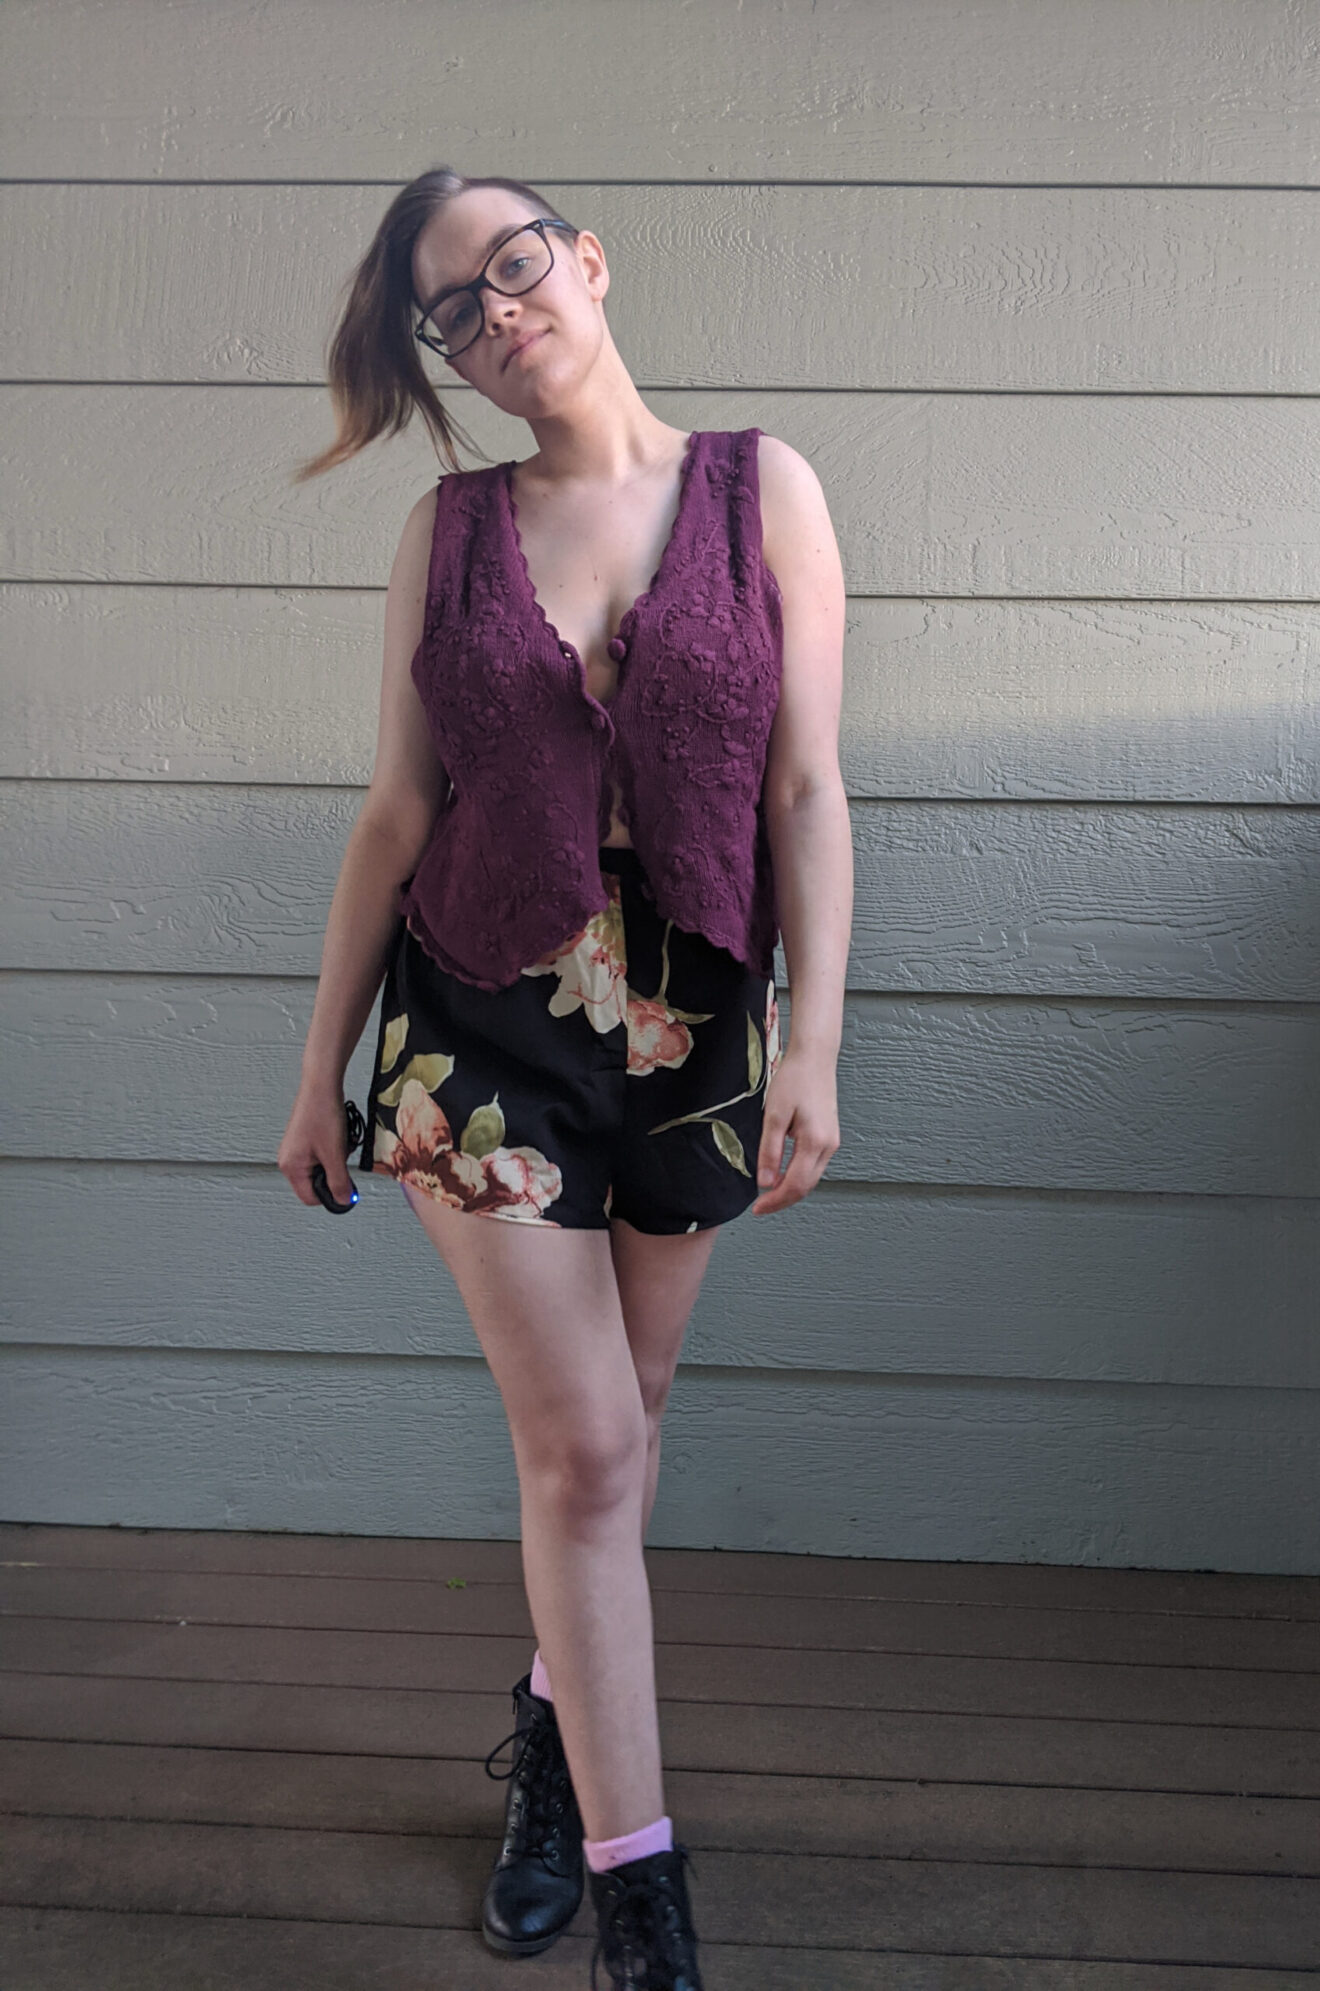 It Isnt Love If Its Selfish Alissa Ackerman Story Behind The Cloth fashion blog post Summer Mori Kei gothic bohemian witchy romantic outfit Heartbreak breakup depression love loss 1 scaled